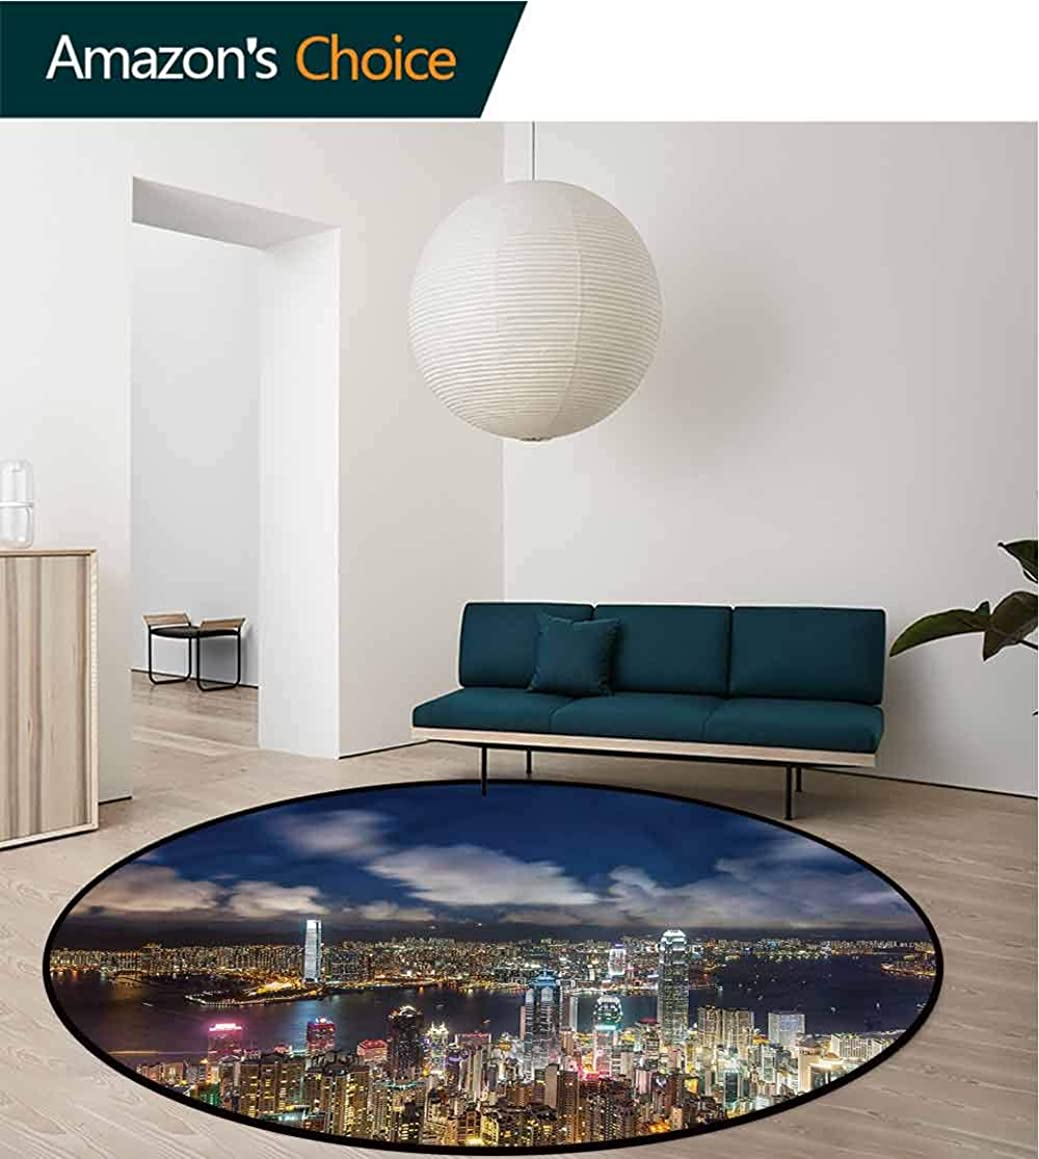 RUGSMAT Cityscape Non-Slip Area Rug Pad Round,Night View Hong Kong Pattern Floor Seat Pad Home Decorative Indoor Round-71